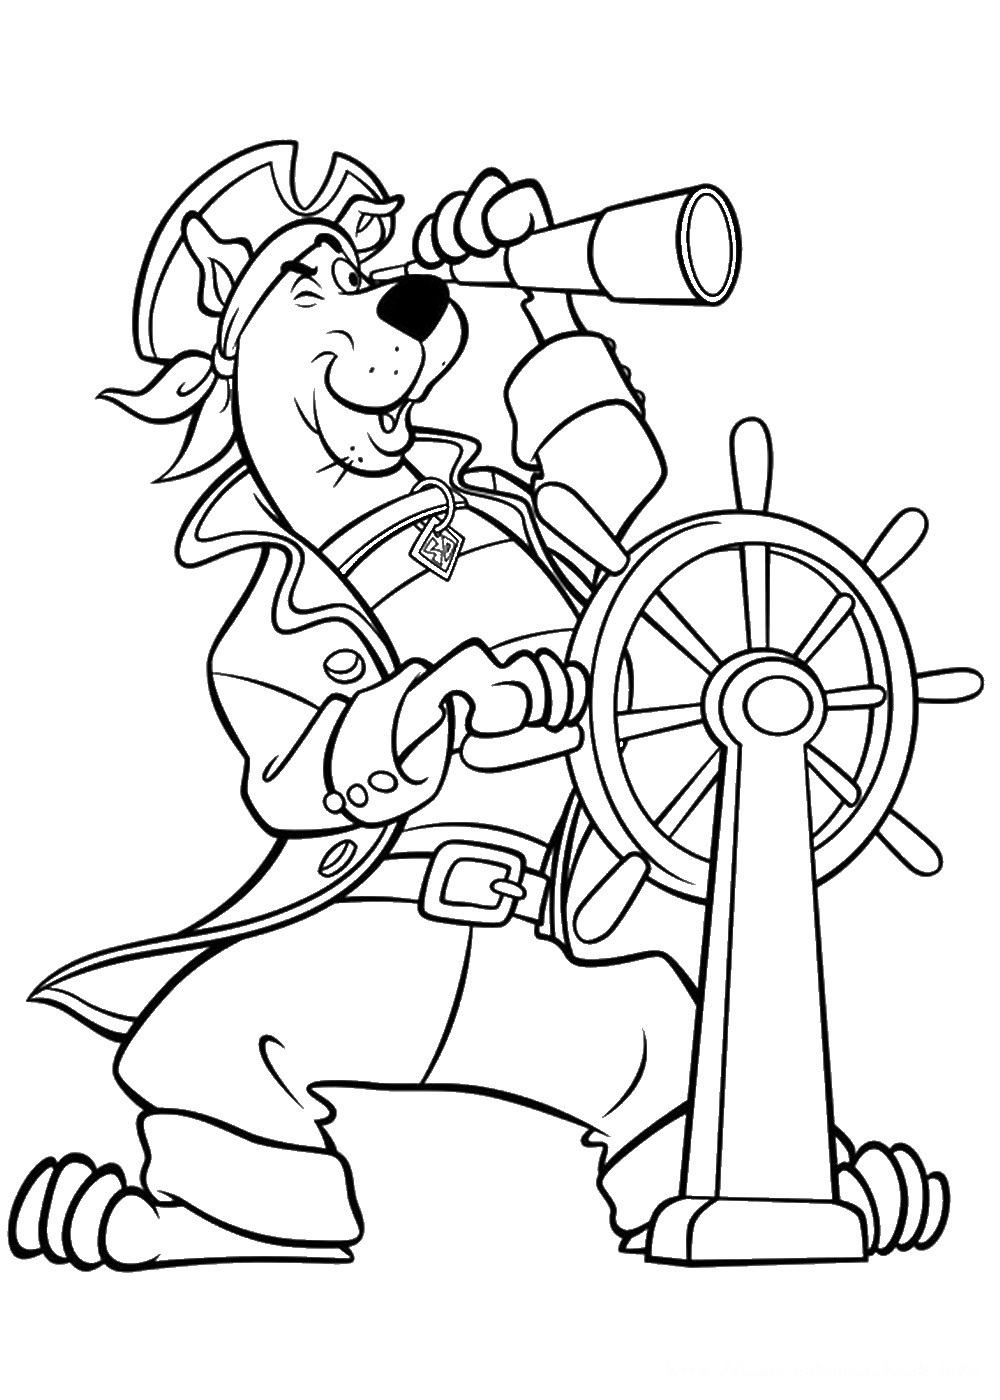 Coloriage Scooby-Doo pirate